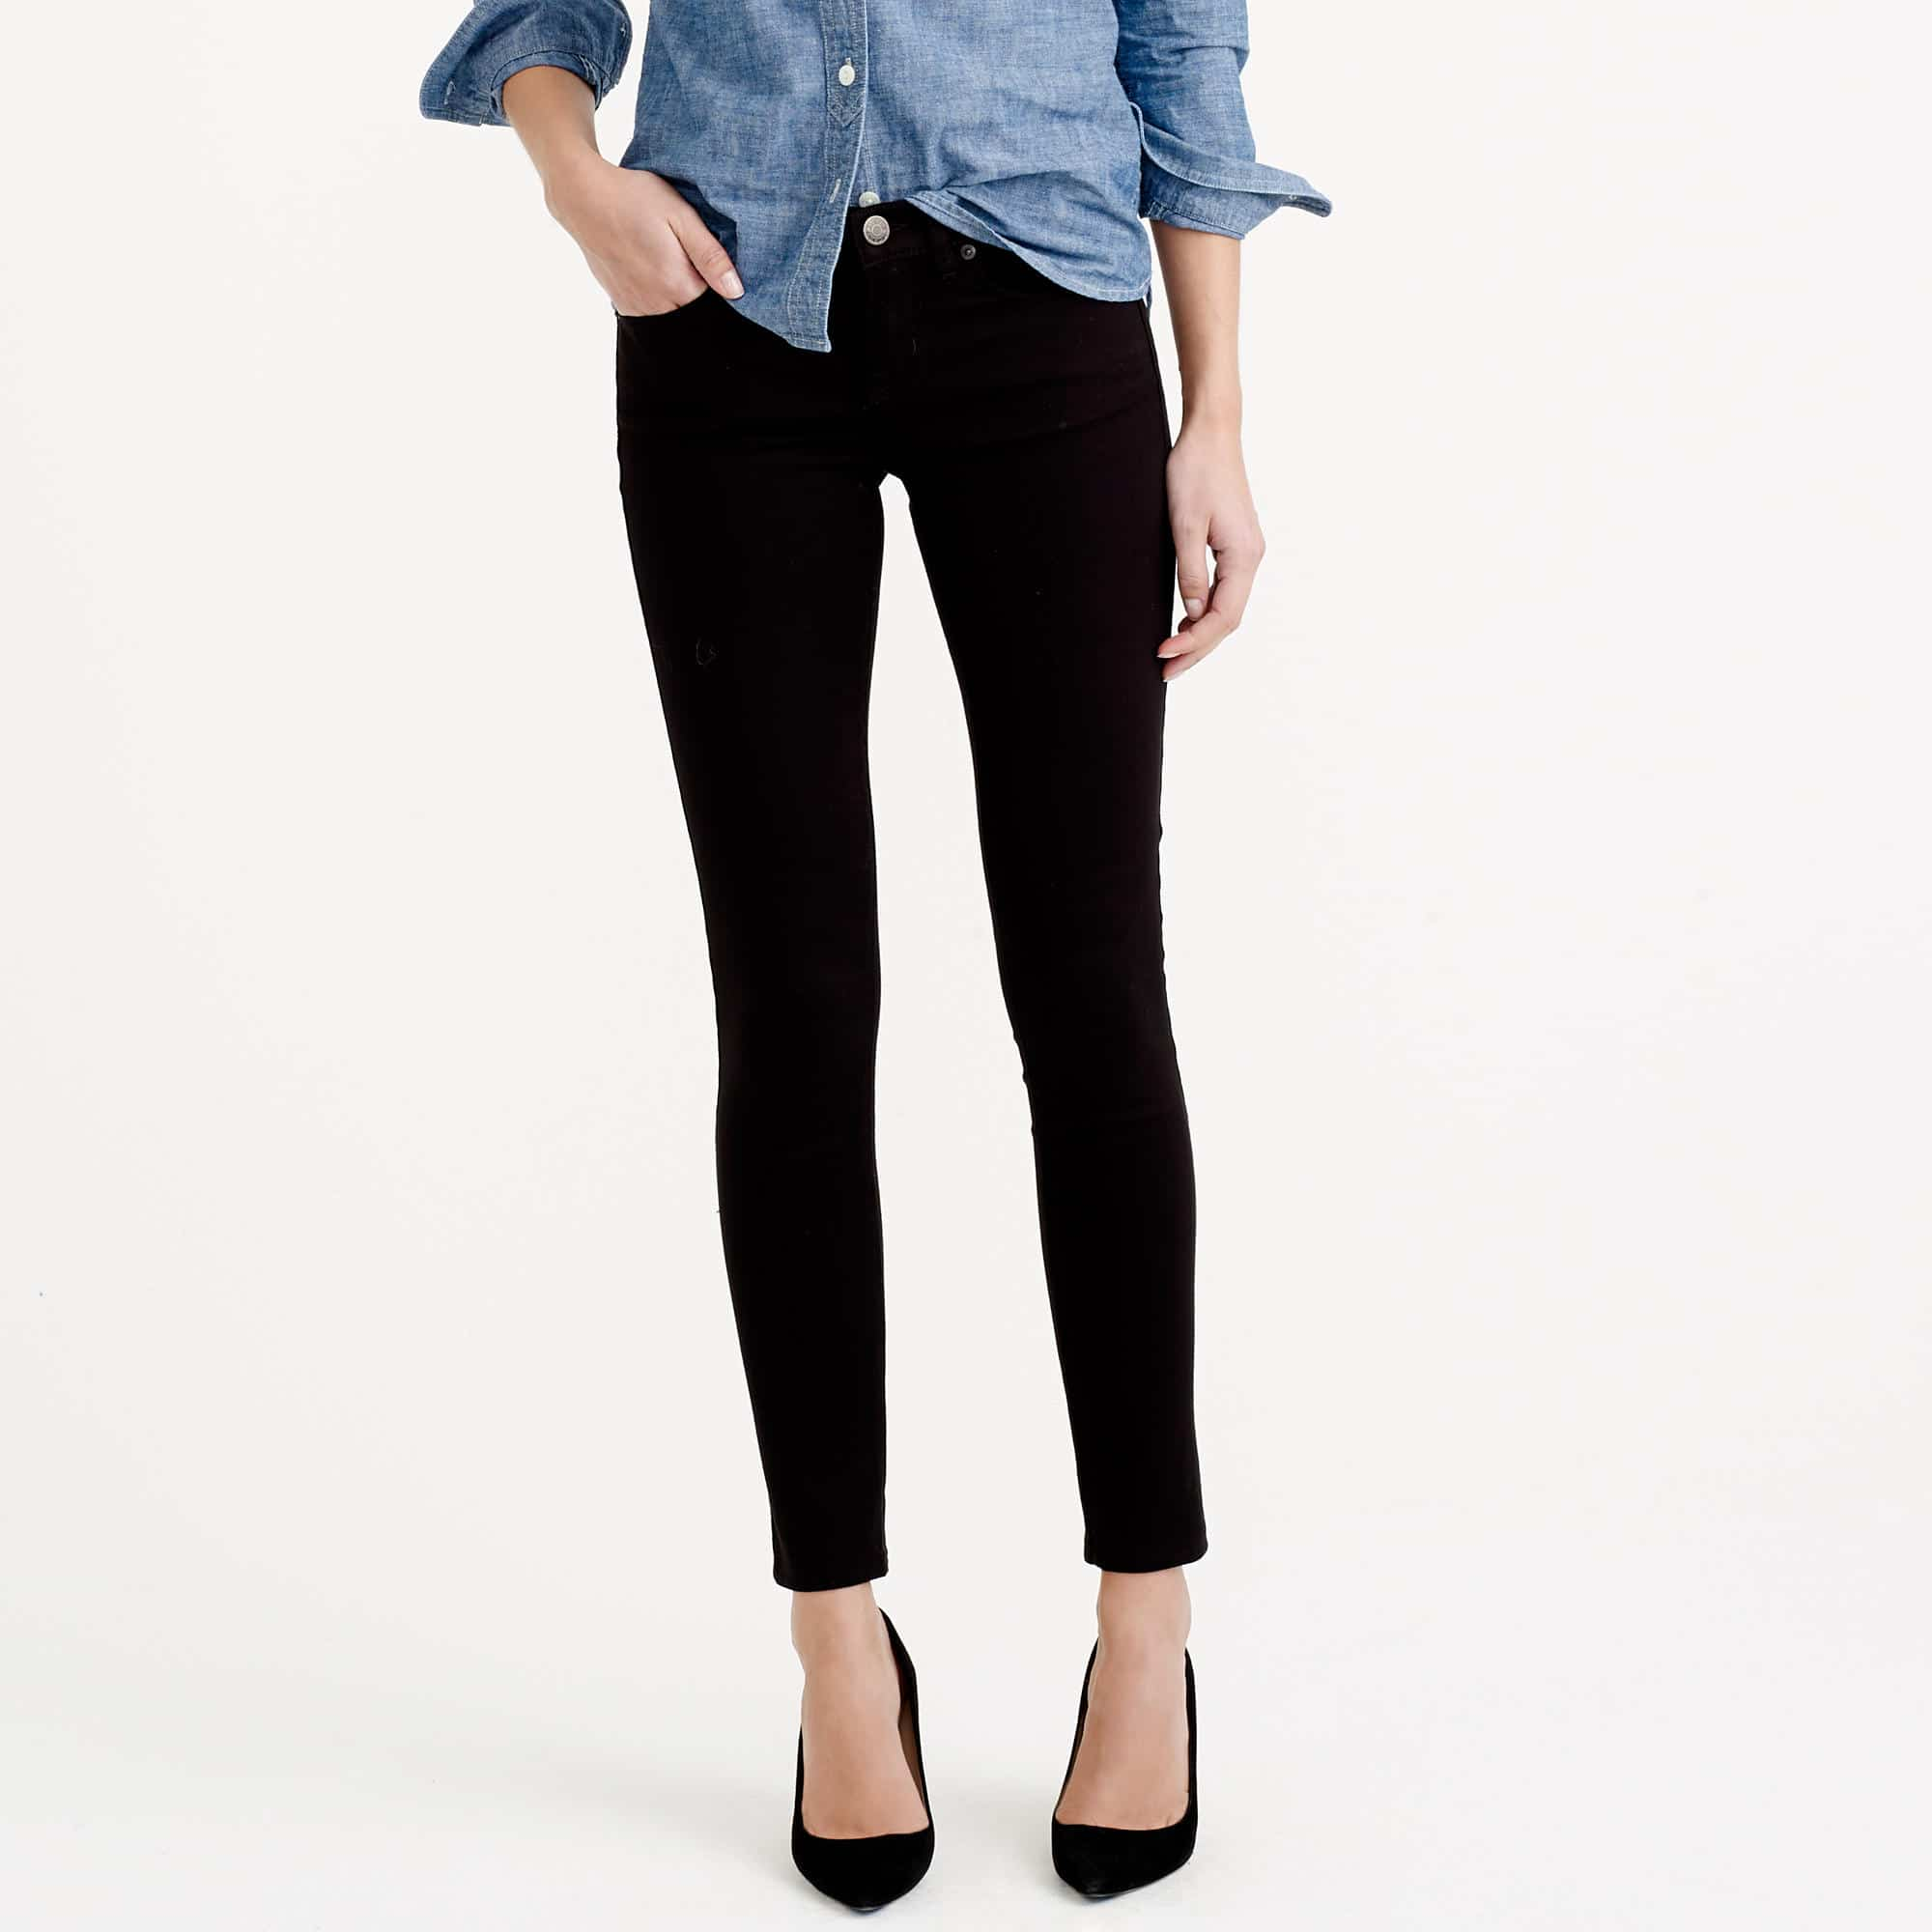 In my closet: BLACK TOOTHPICK JEANS! These are gorgeous, slimming and so comfy - they have stretch in them! They are my go-to jeans.